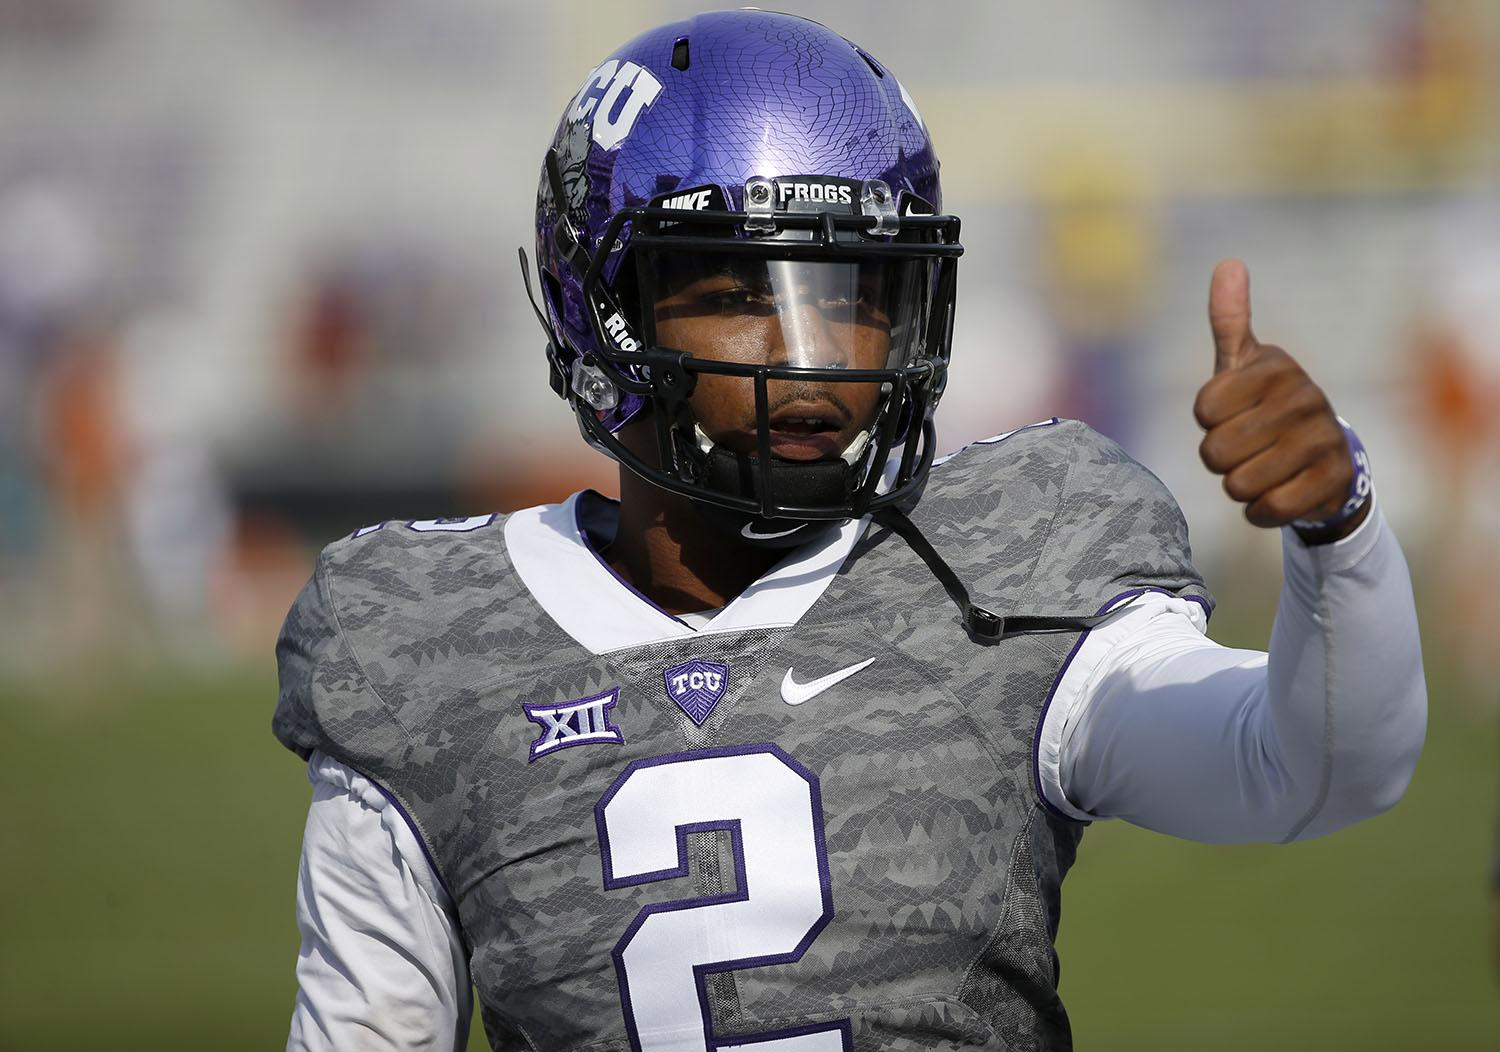 TCU quarterback Trevone Boykin gestures to a teammate before TCU takes on the Texas in a NCAA football game Saturday, Oct. 3, 2015, in Fort Worth, Texas. (AP Photo/Ron Jenkins)